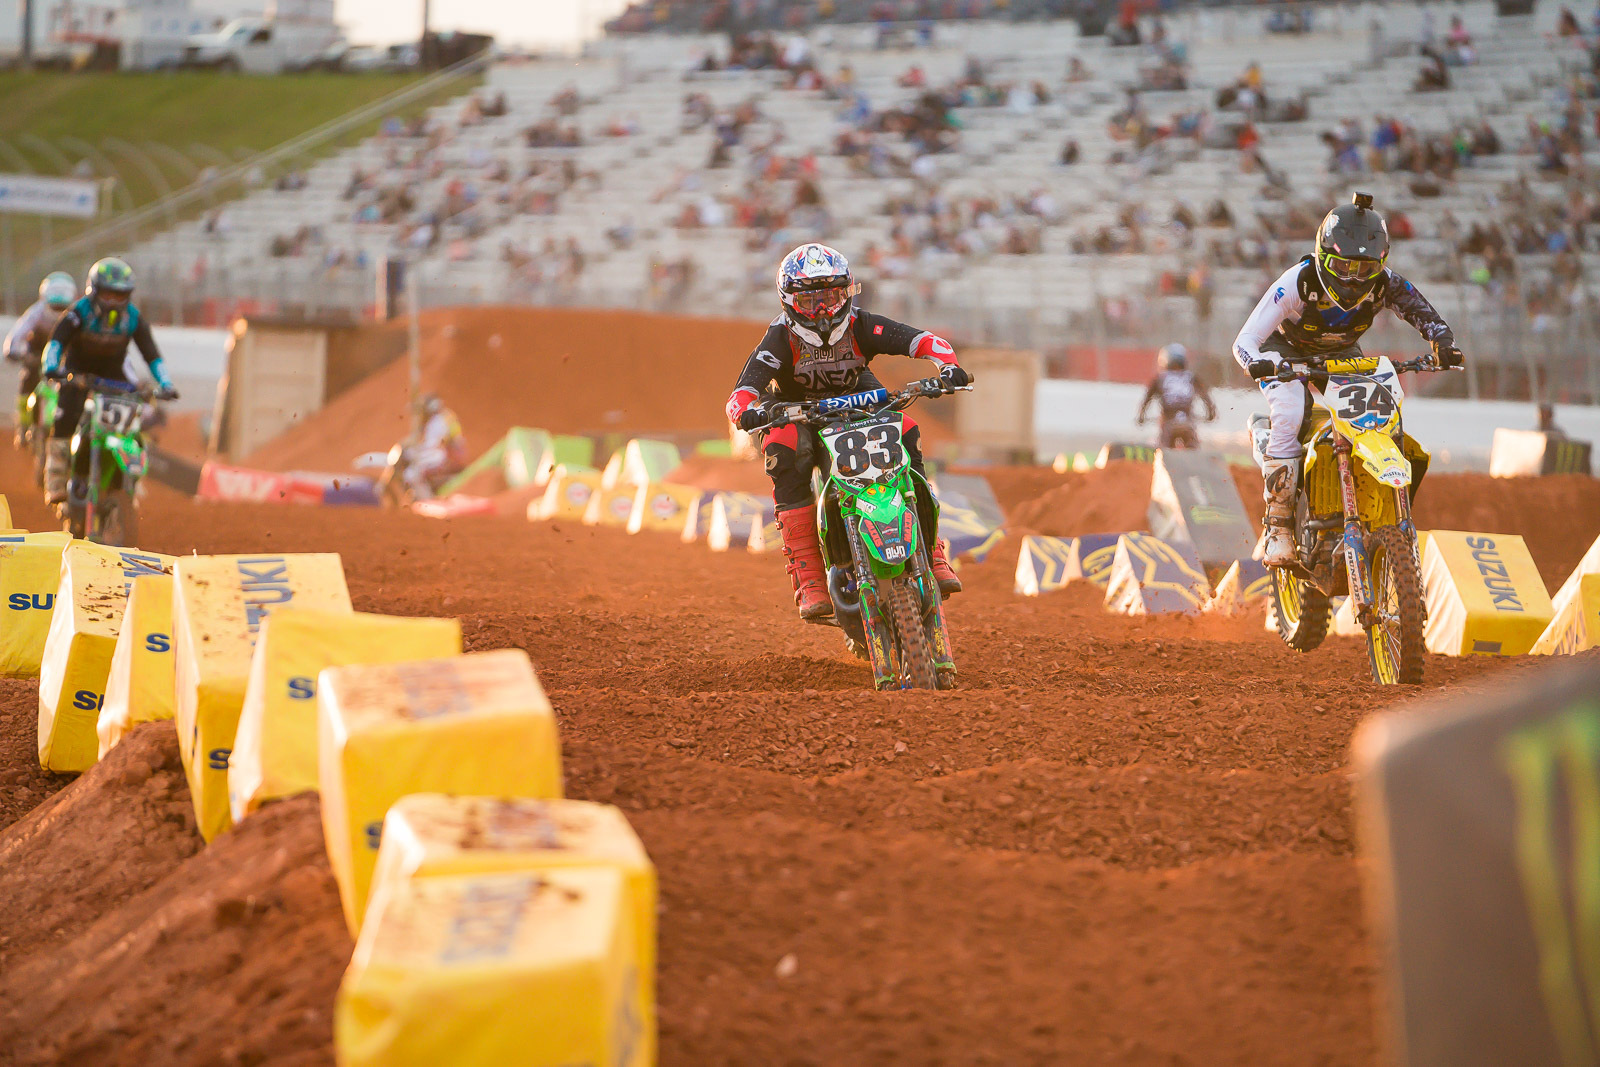 2021-ATLANTA-THREE-SUPERCROSS_KICKSTART_0972